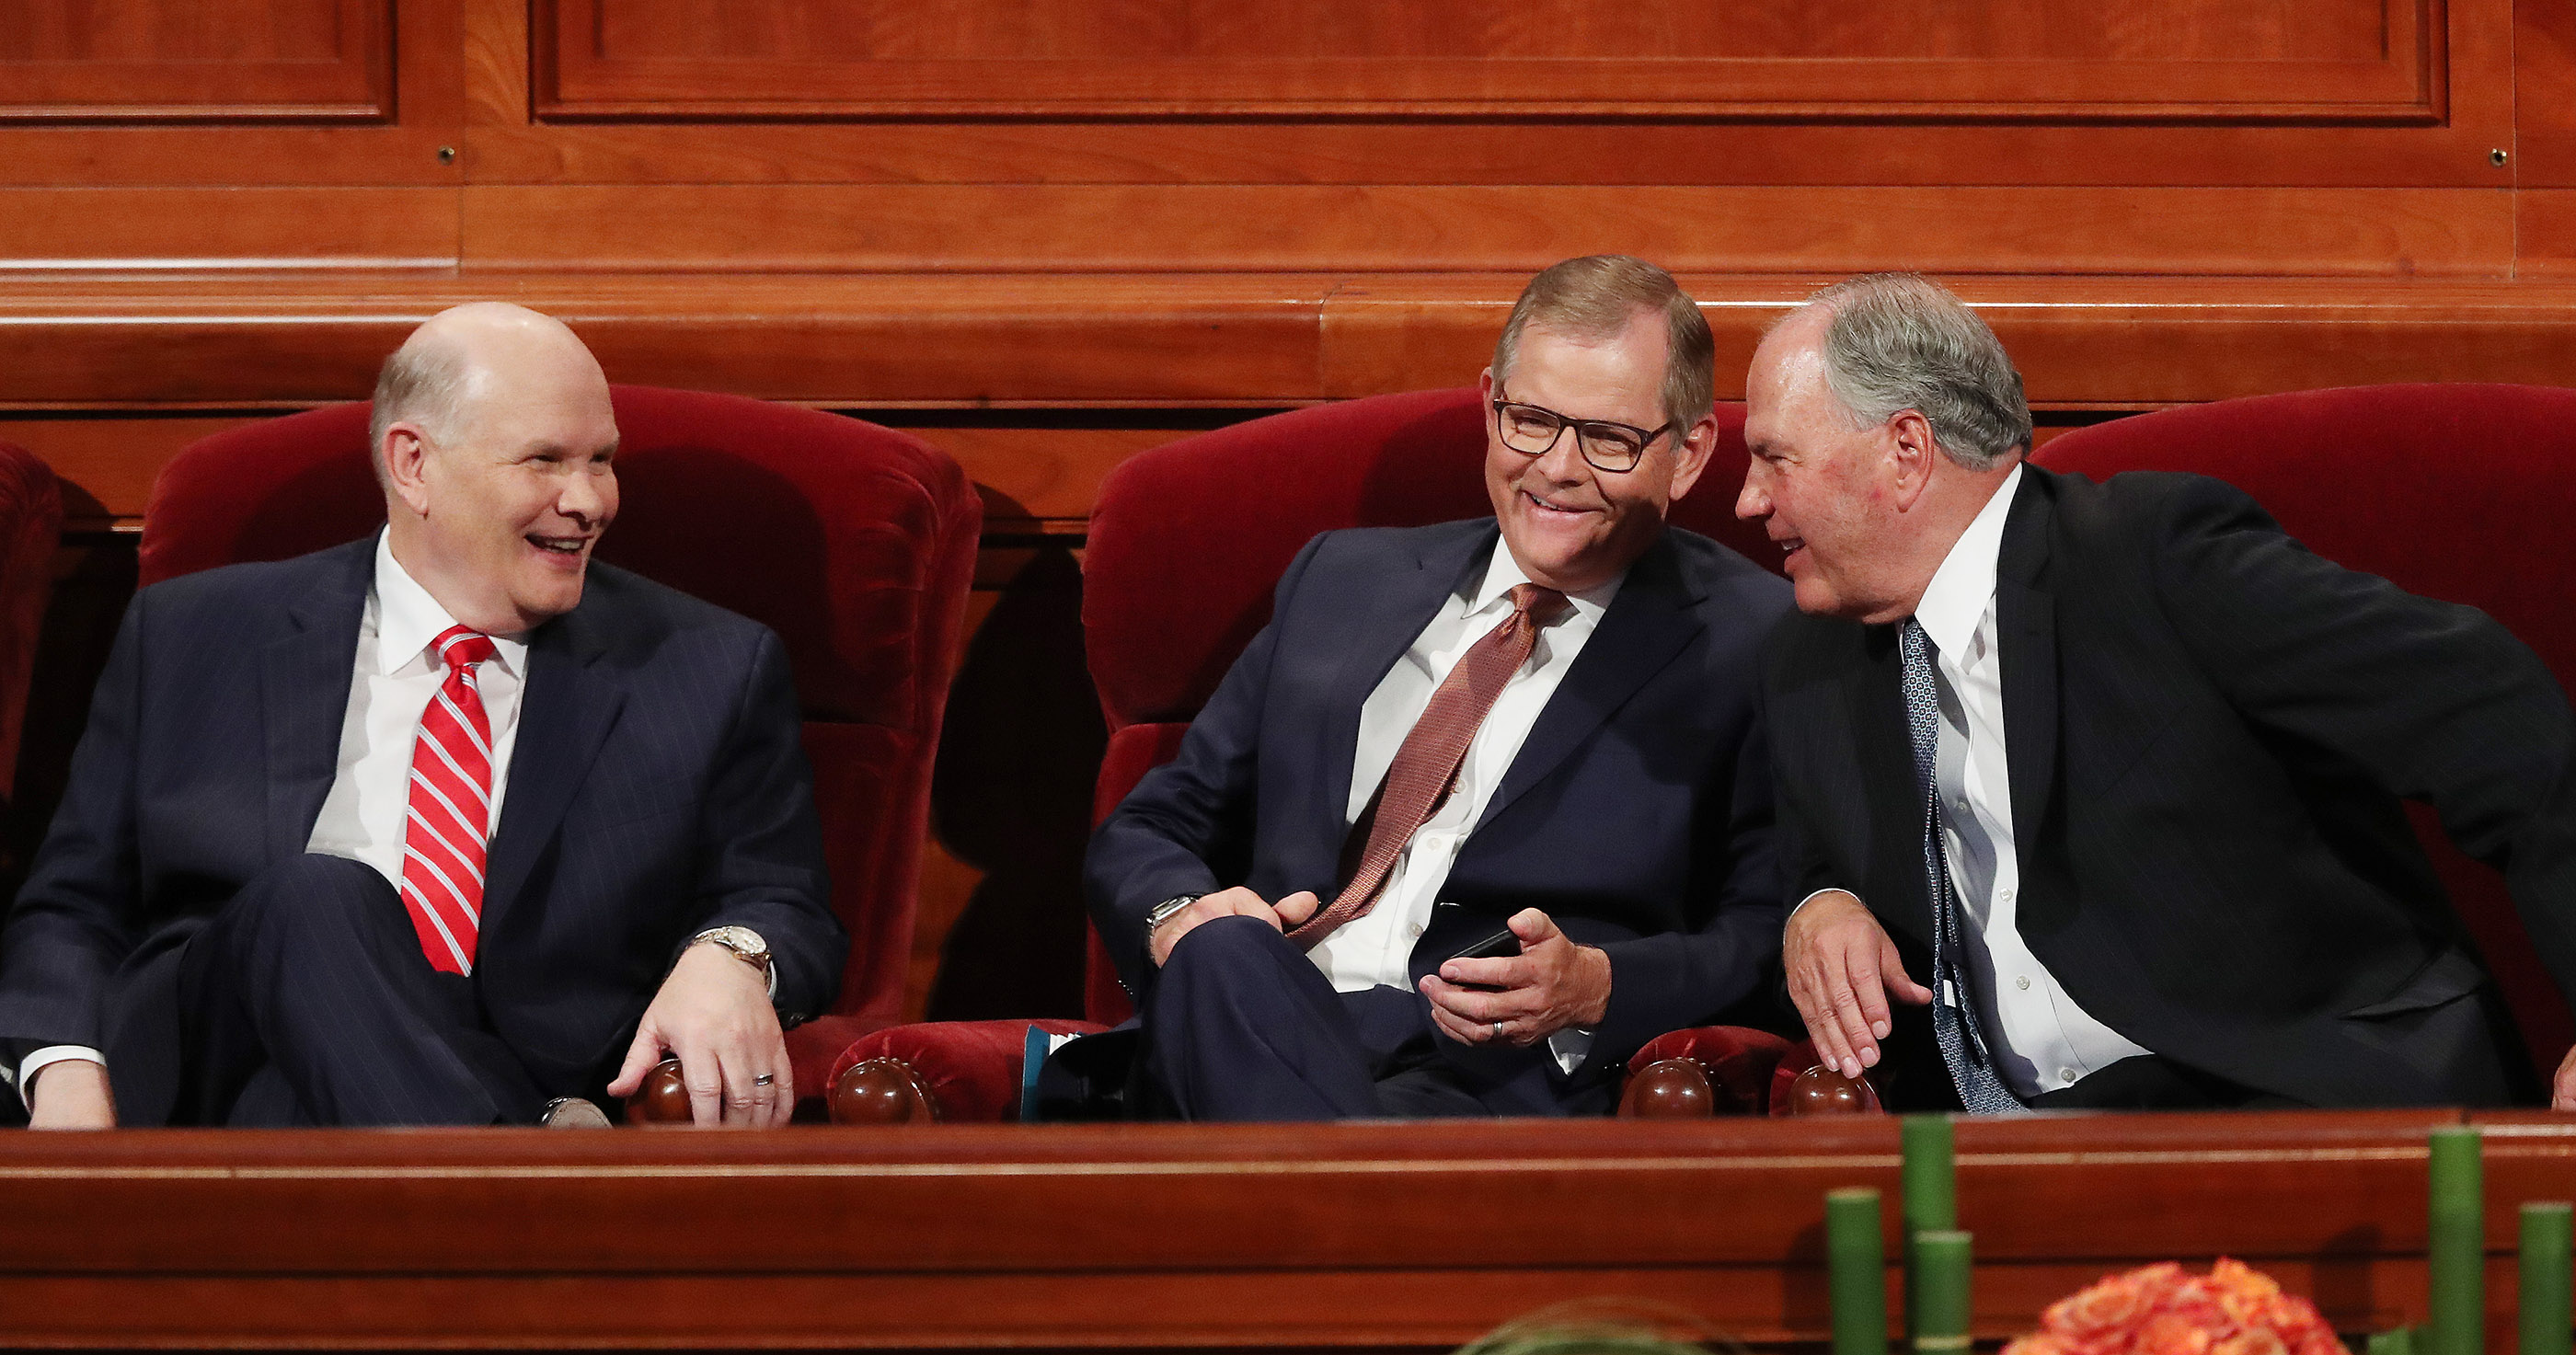 Elder Dale G. Renlund, left, Elder Gary E. Stevenson and Elder Ronald A. Rasband of the Quorum of the Twelve Apostles talk prior to the Sunday afternoon session of the 188th Semiannual General Conference of The Church of Jesus Christ of Latter-day Saints in the Conference Center in Salt Lake City on Sunday, Oct. 7, 2018.